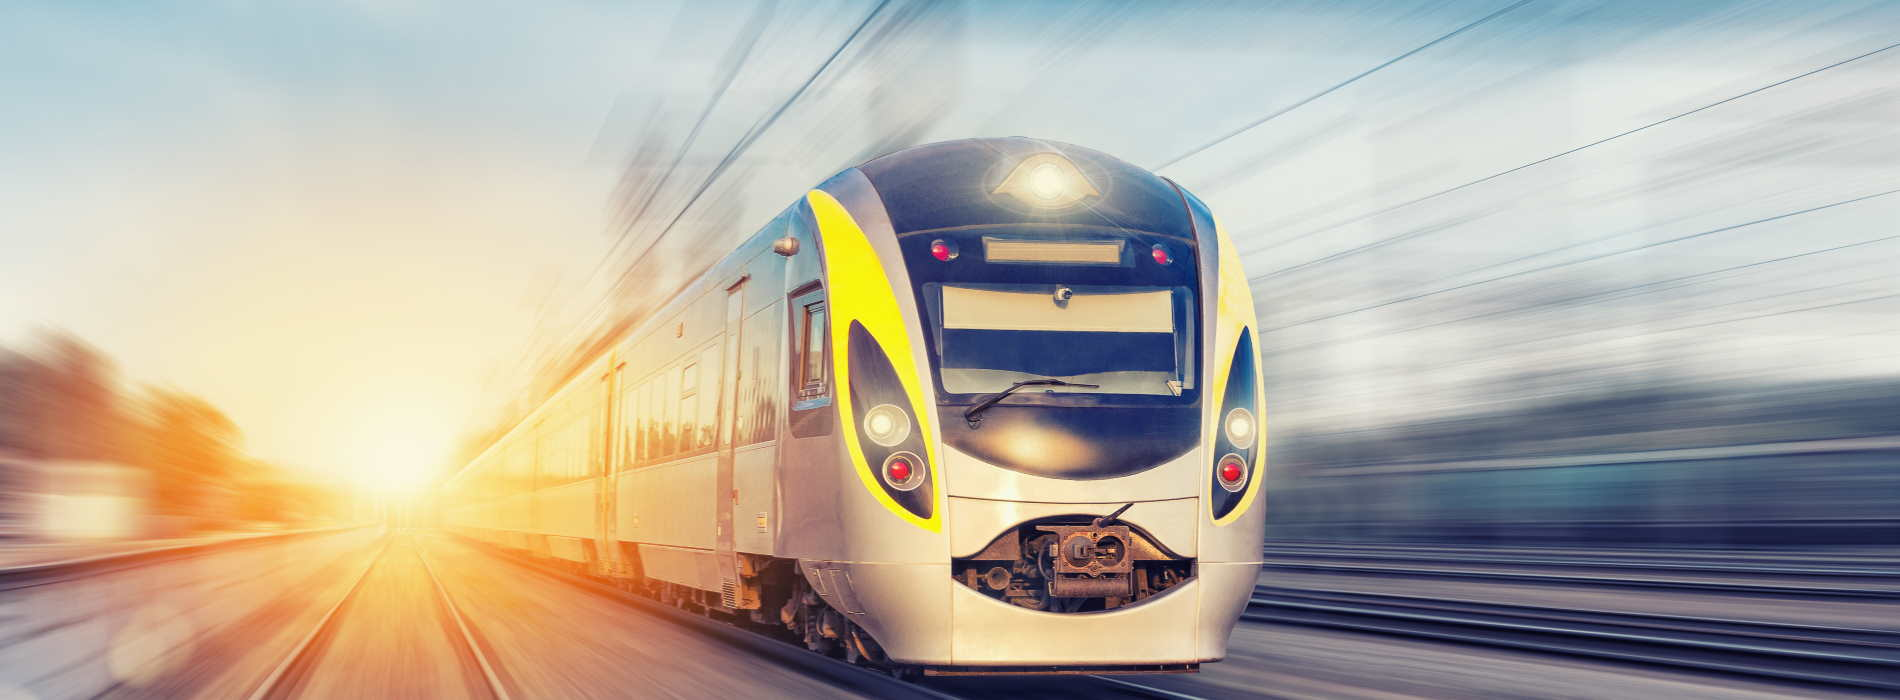 Header image: High speed rail - source Shutterstock